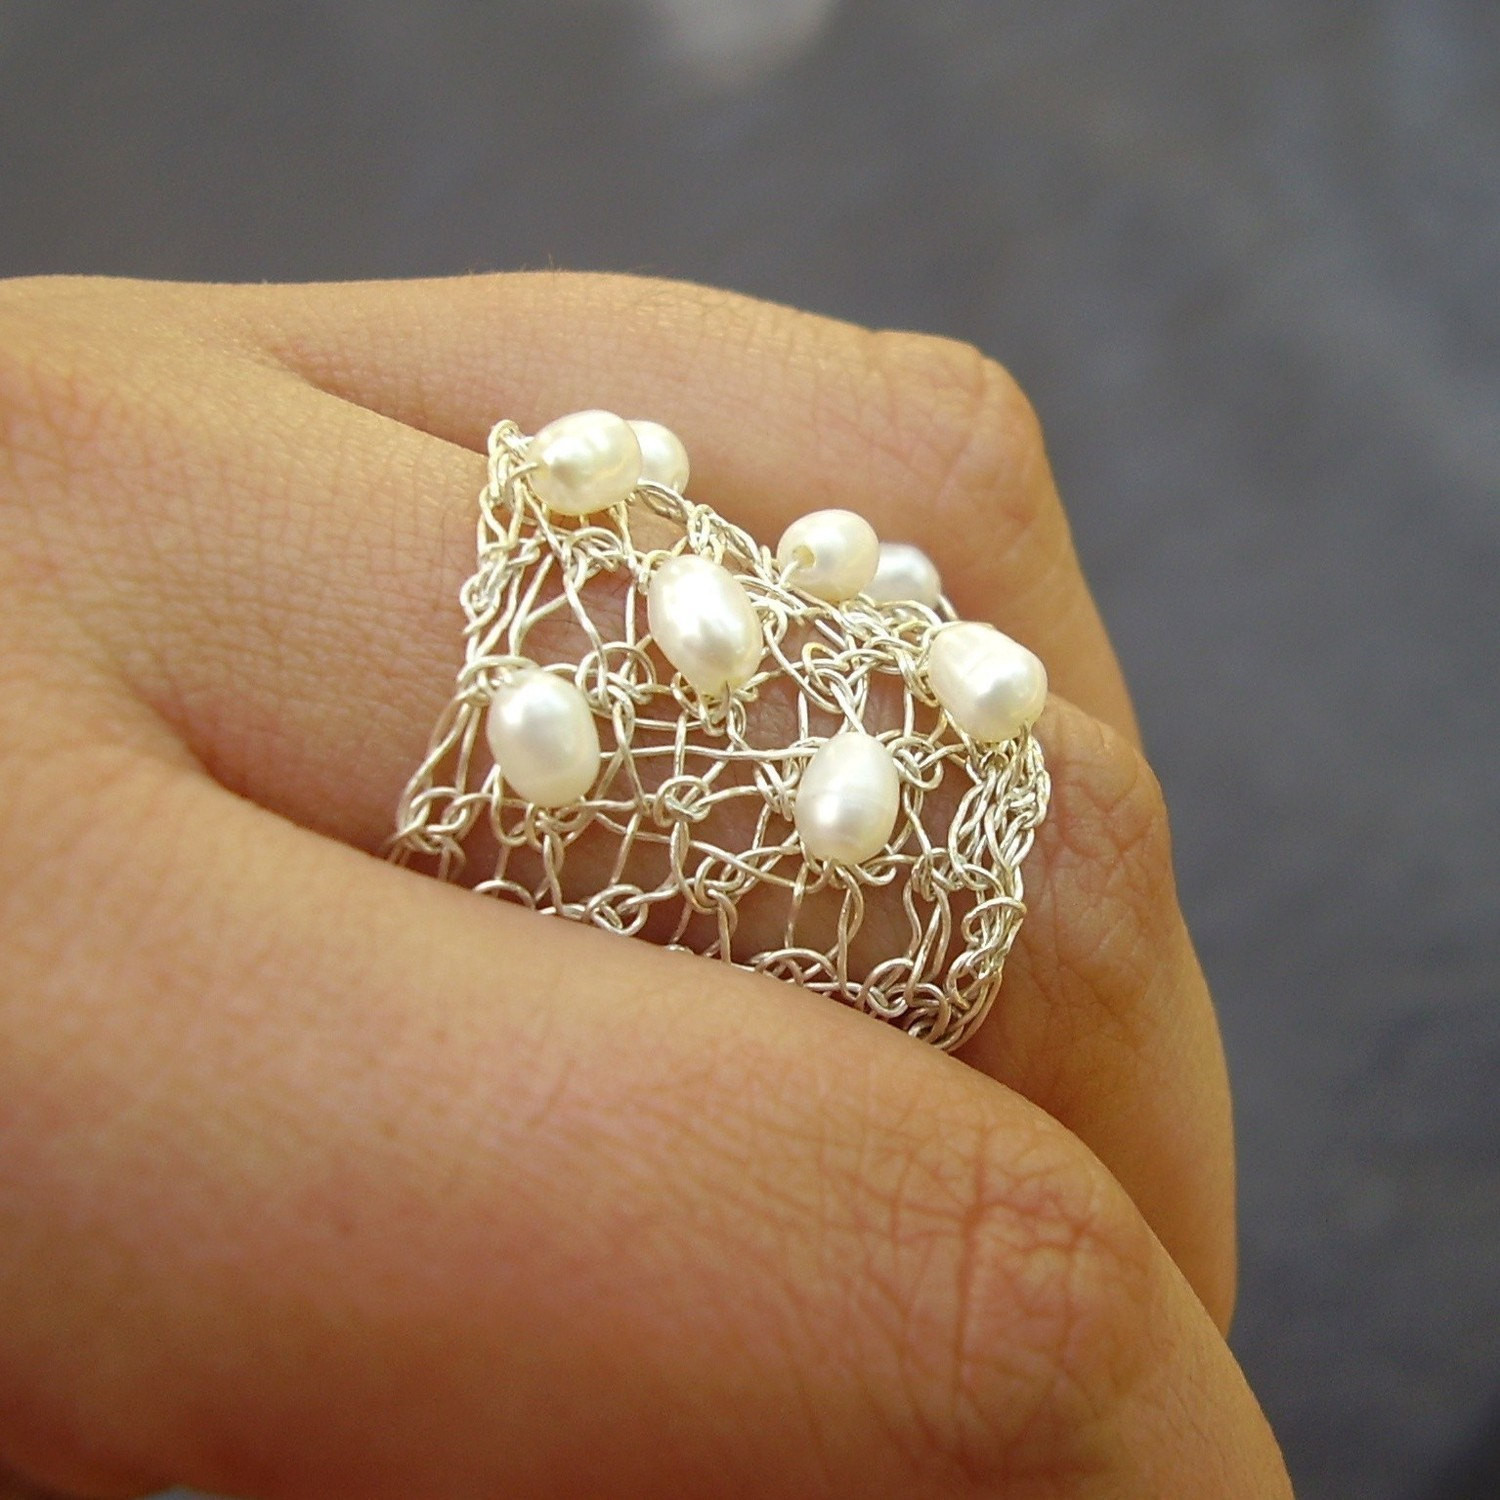 Crochet Rings Unique Spread Ring Crochet Sterling Silver Wire and Pearls Of Unique 40 Pics Crochet Rings